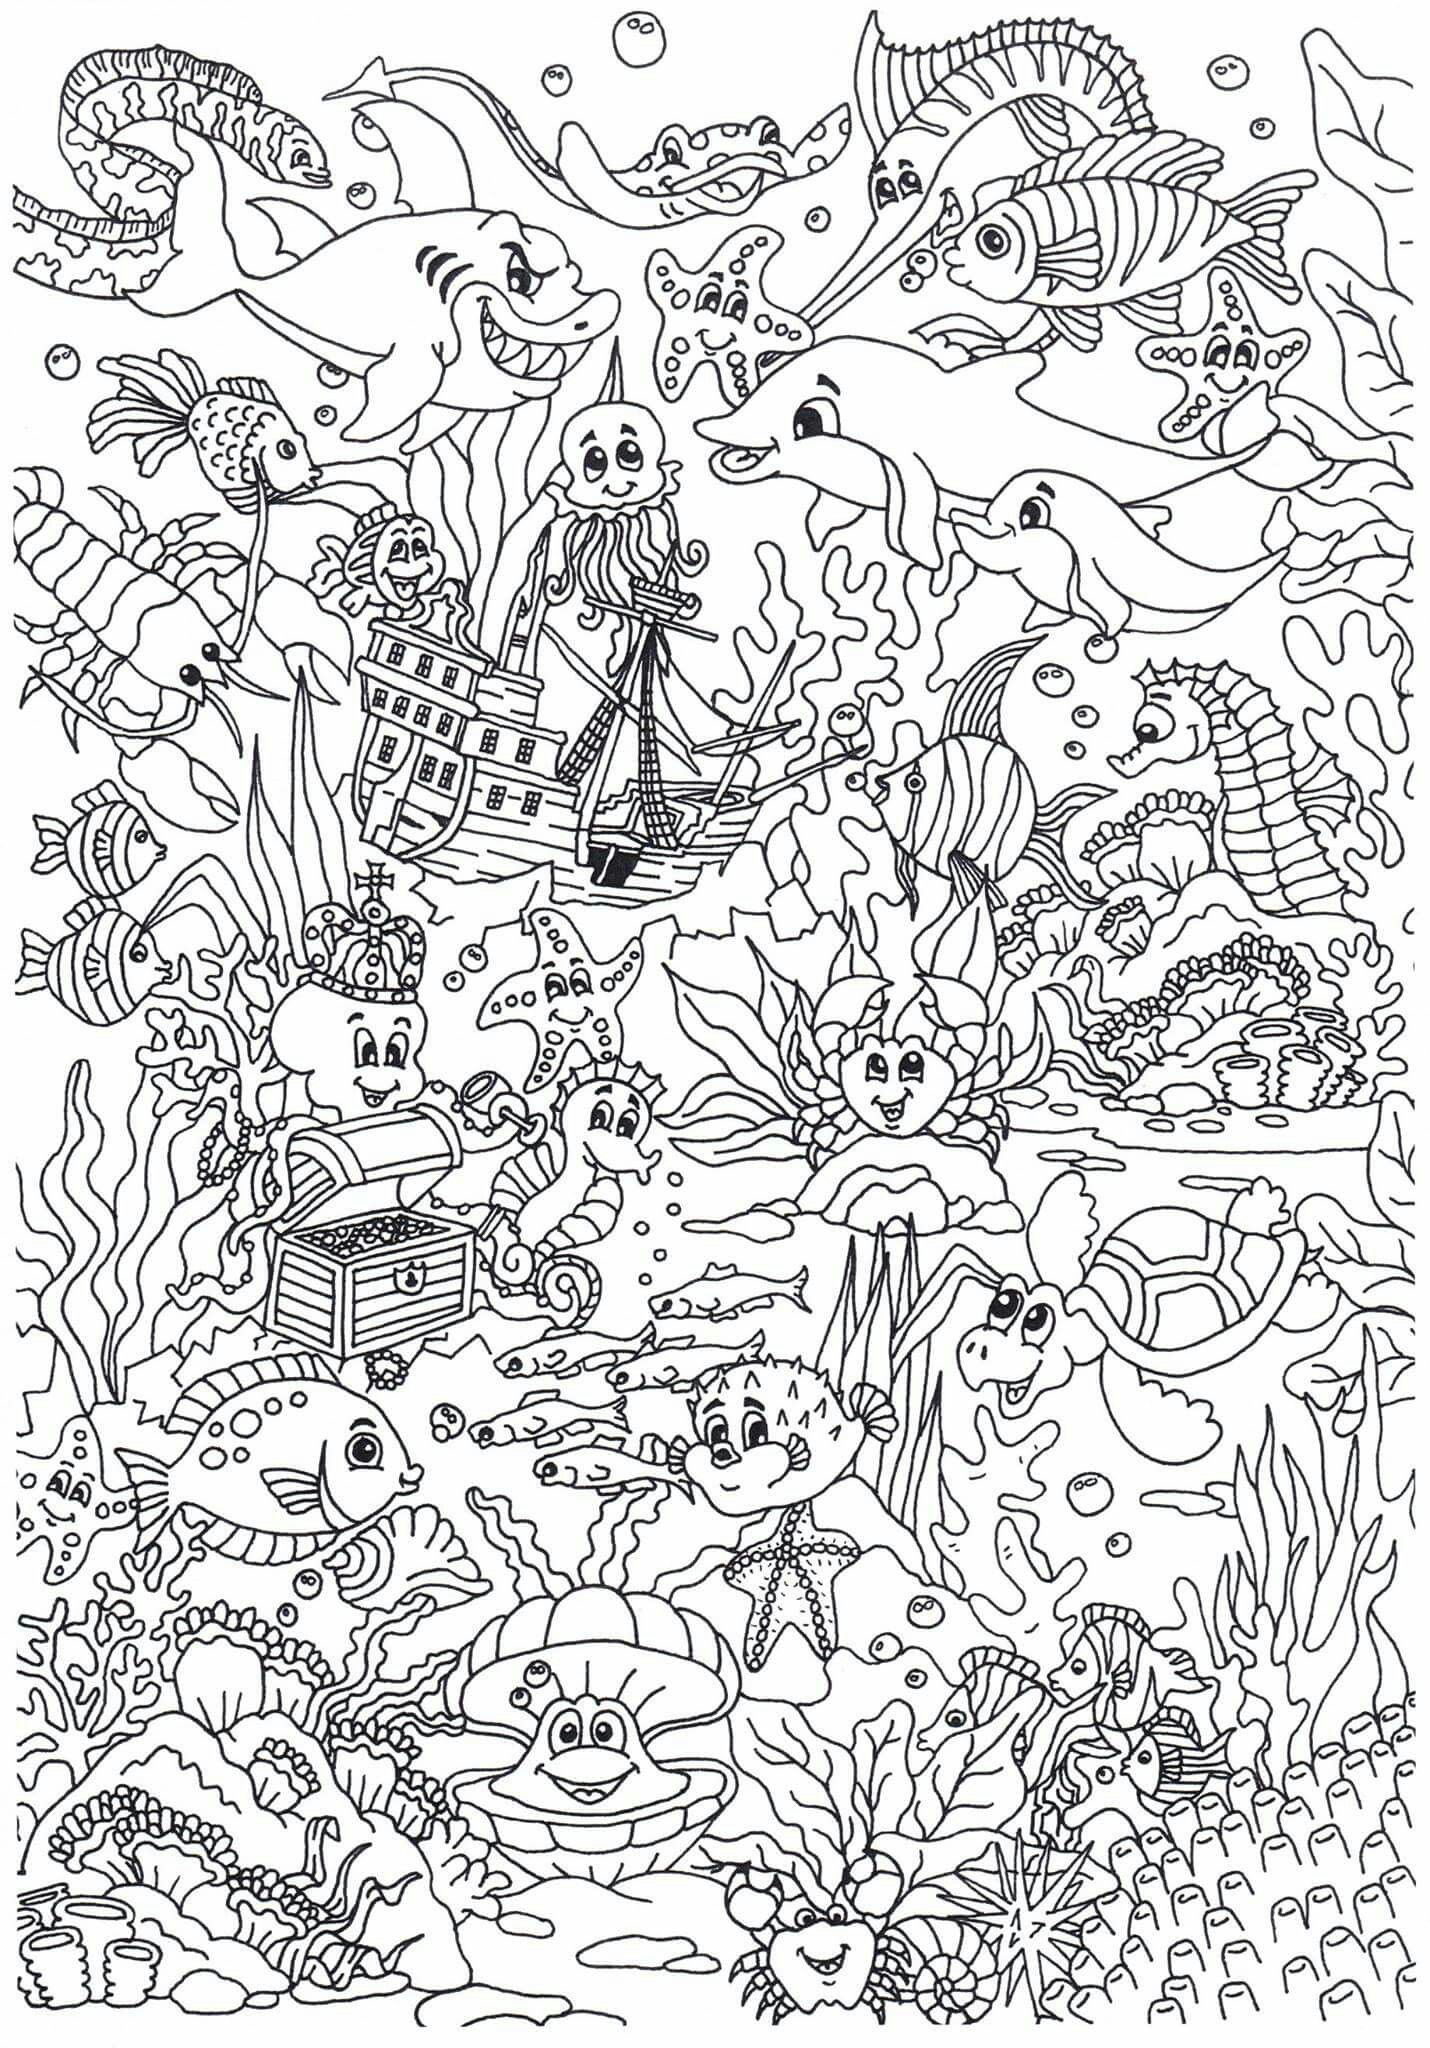 Pin By Patricia Hack On Kleurplaten Cat Coloring Book Coloring Pages Coloring Books